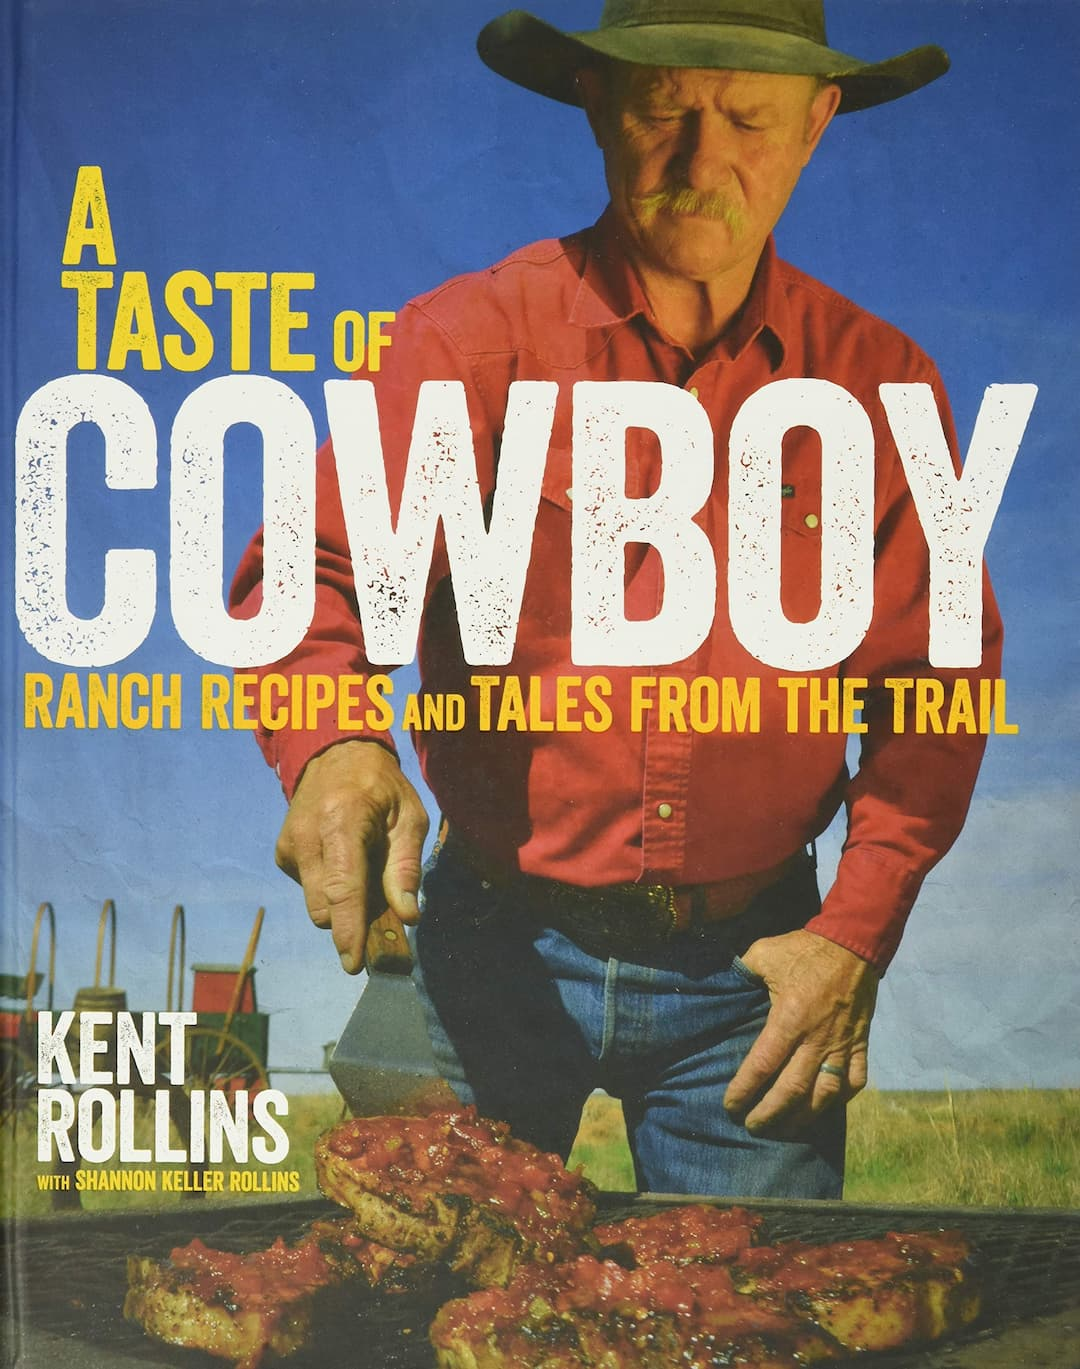 A Taste of Cowboy, Cooking, Kent Rollins, Midwest, Nonfiction, Outdoor Cooking, United States